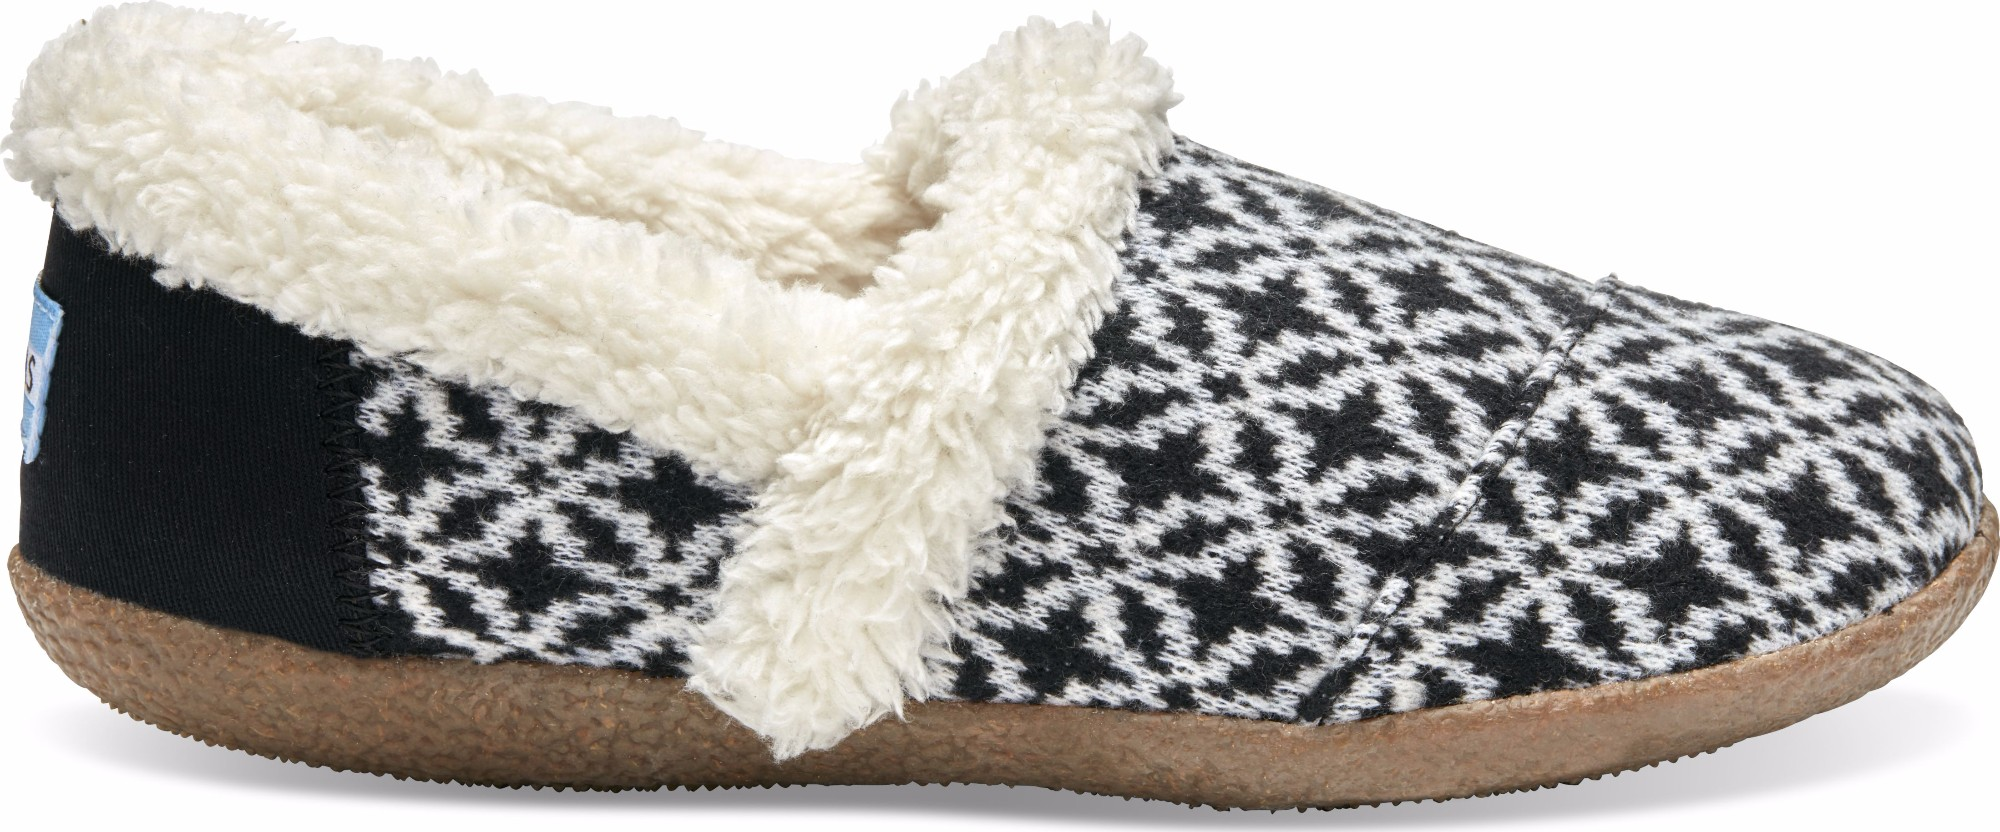 TOMS Fair Isle Woven Women's Slippers Black/White 37,5